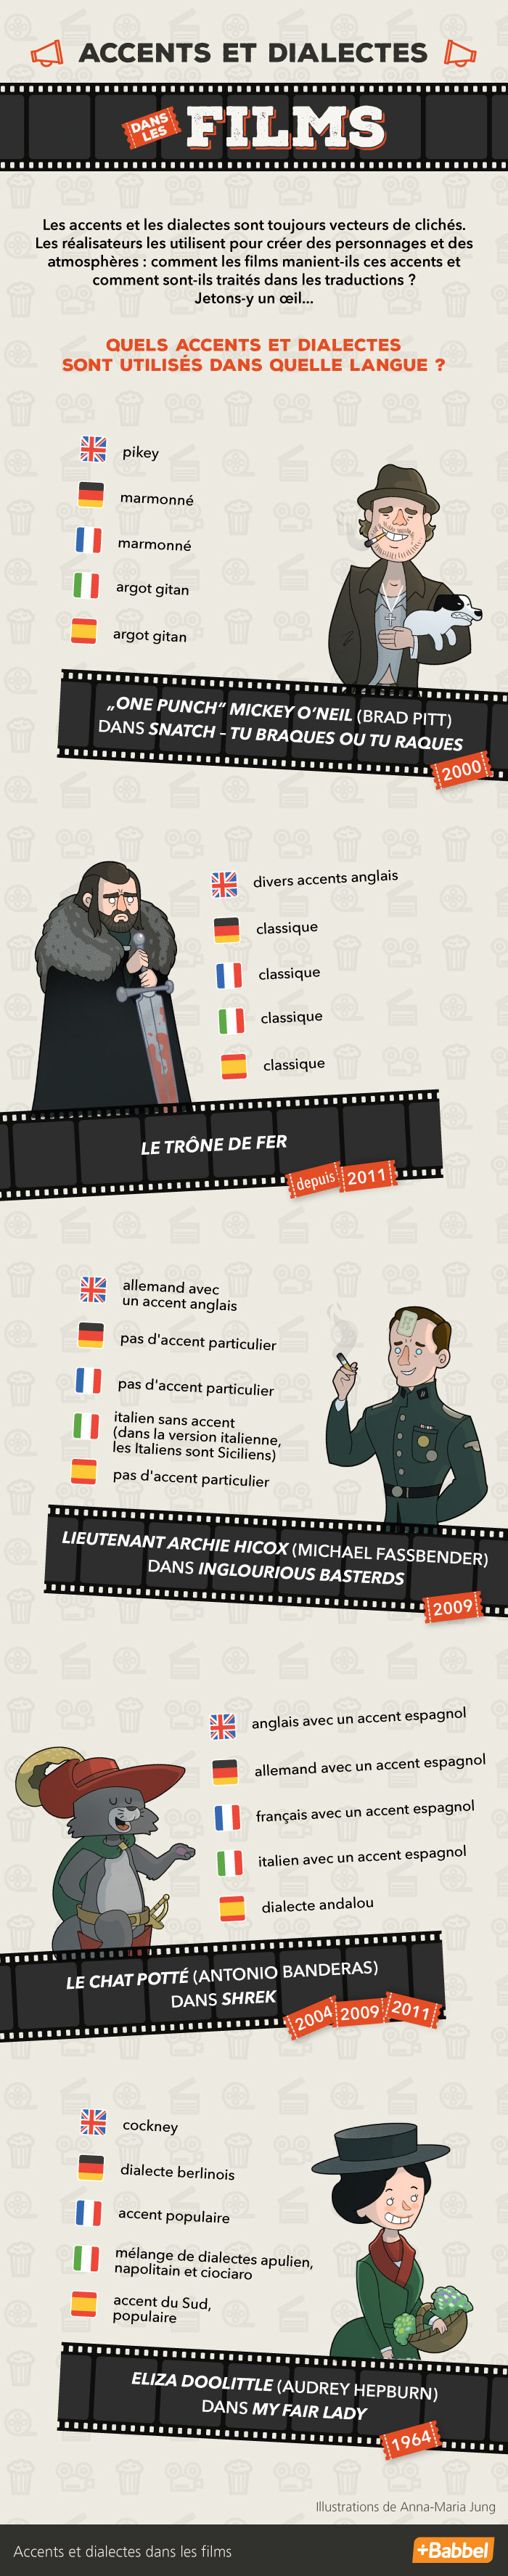 Version originale vs. version doublée : dialectes et accents au cinéma